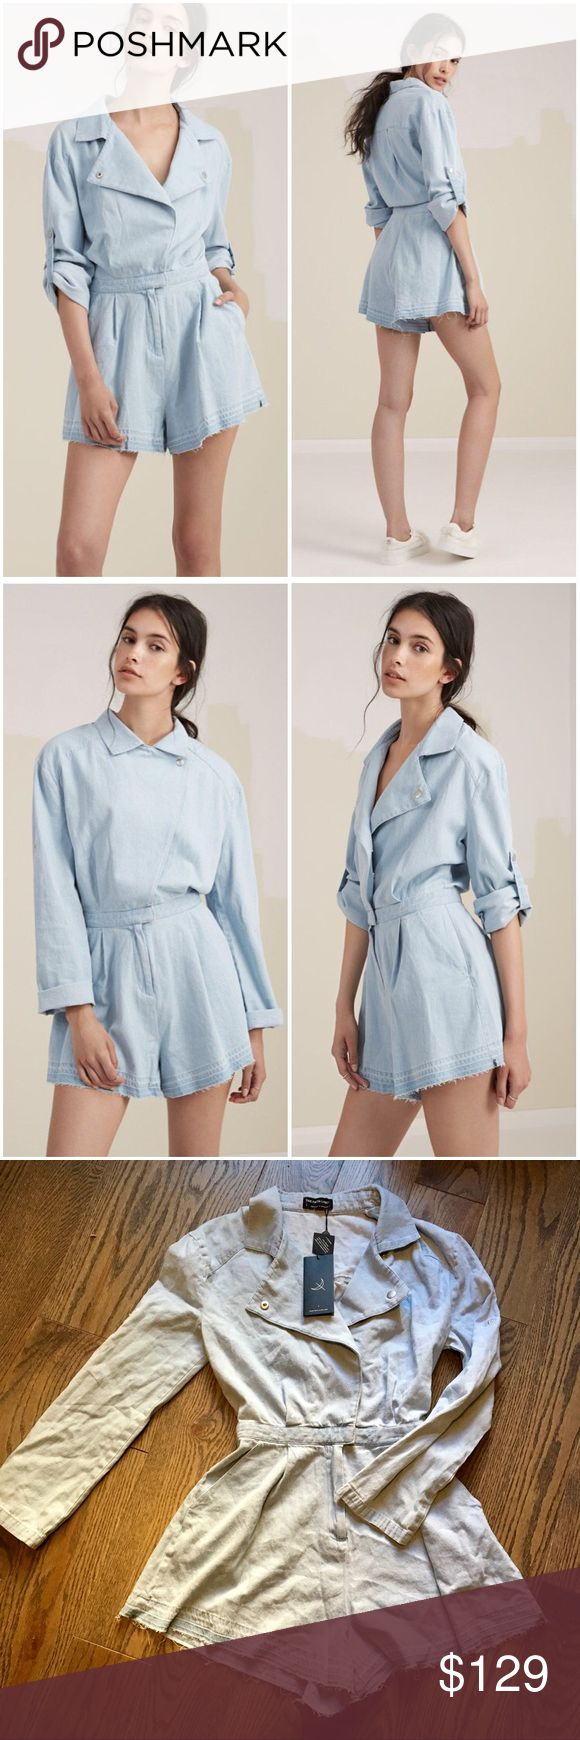 "The Fifth Label Denim Romper The Motel Playsuit from The Fifth Label. This super comfy and relaxed fit romper is perfect for lounging days! Pair it with minimal jewelry and sandals to complete the look! Hip pockets. Moto Collar can be worn open or closed. Frayed bottom hem. Rollable sleeves. Washed denim with silver hardware. Approx 12.5"" across waist, 13.5"" rise, 3"" inseam, 15.5"" shoulder to waist, 16.5"" across bust, 22"" sleeve length. First 2 pics are stock. NWT.  No trades. Reasonable…"